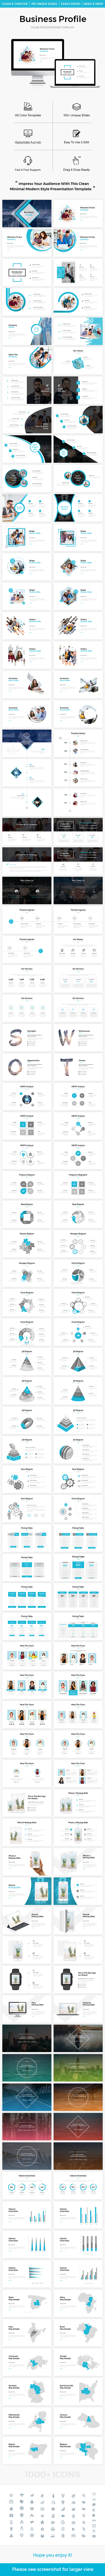 Business Profile PowerPoint Template 2018 - Business PowerPoint Templates